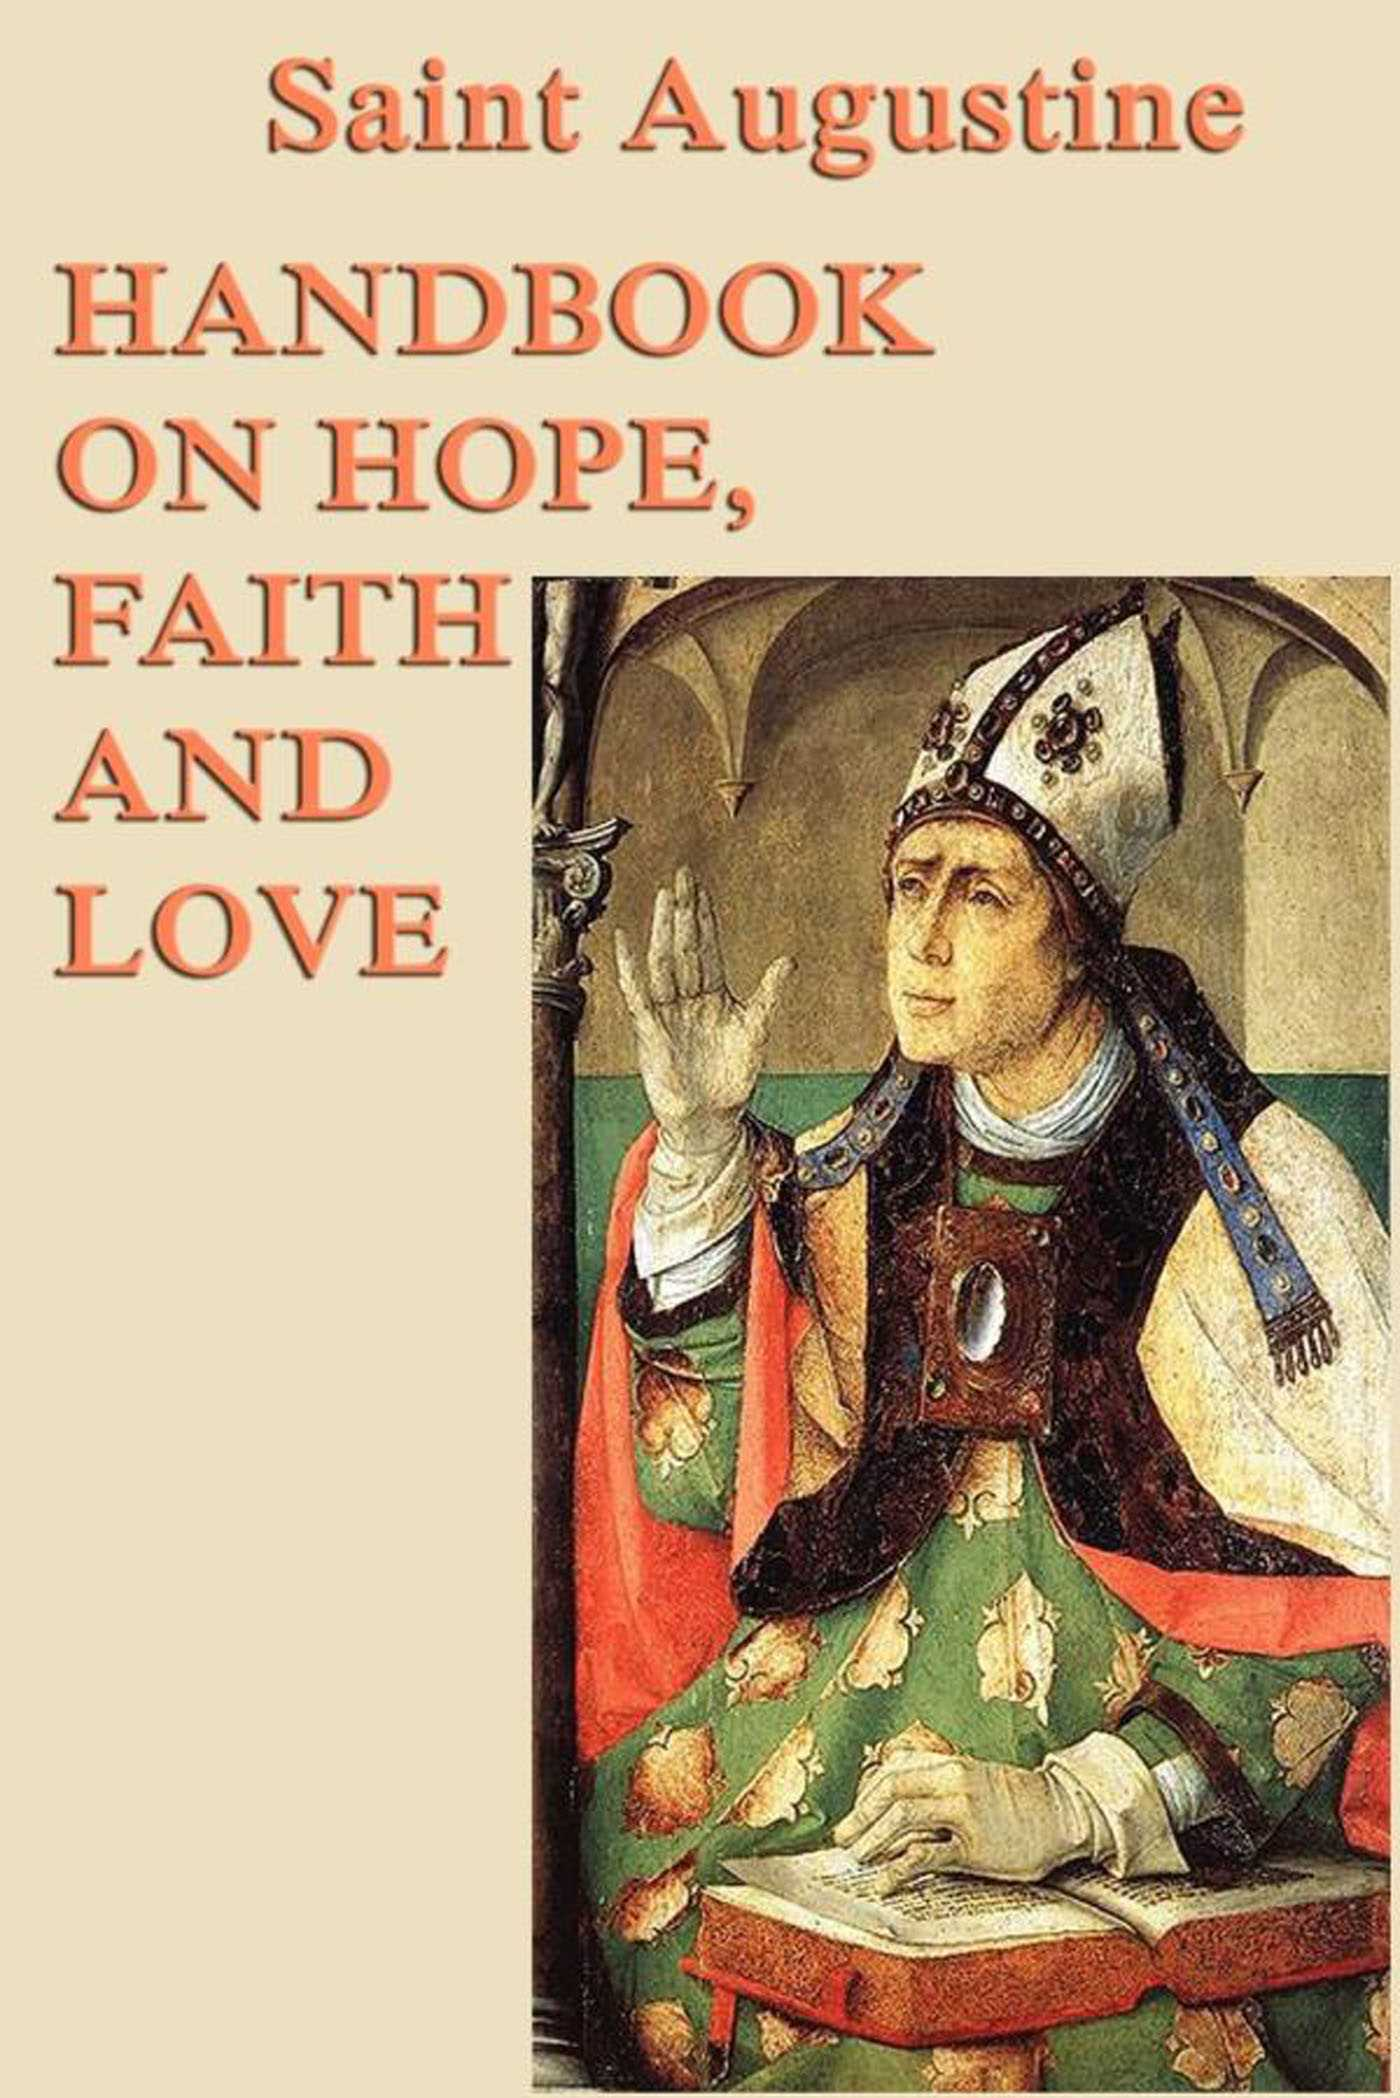 Handbook on hope faith and love 9781625585721 hr